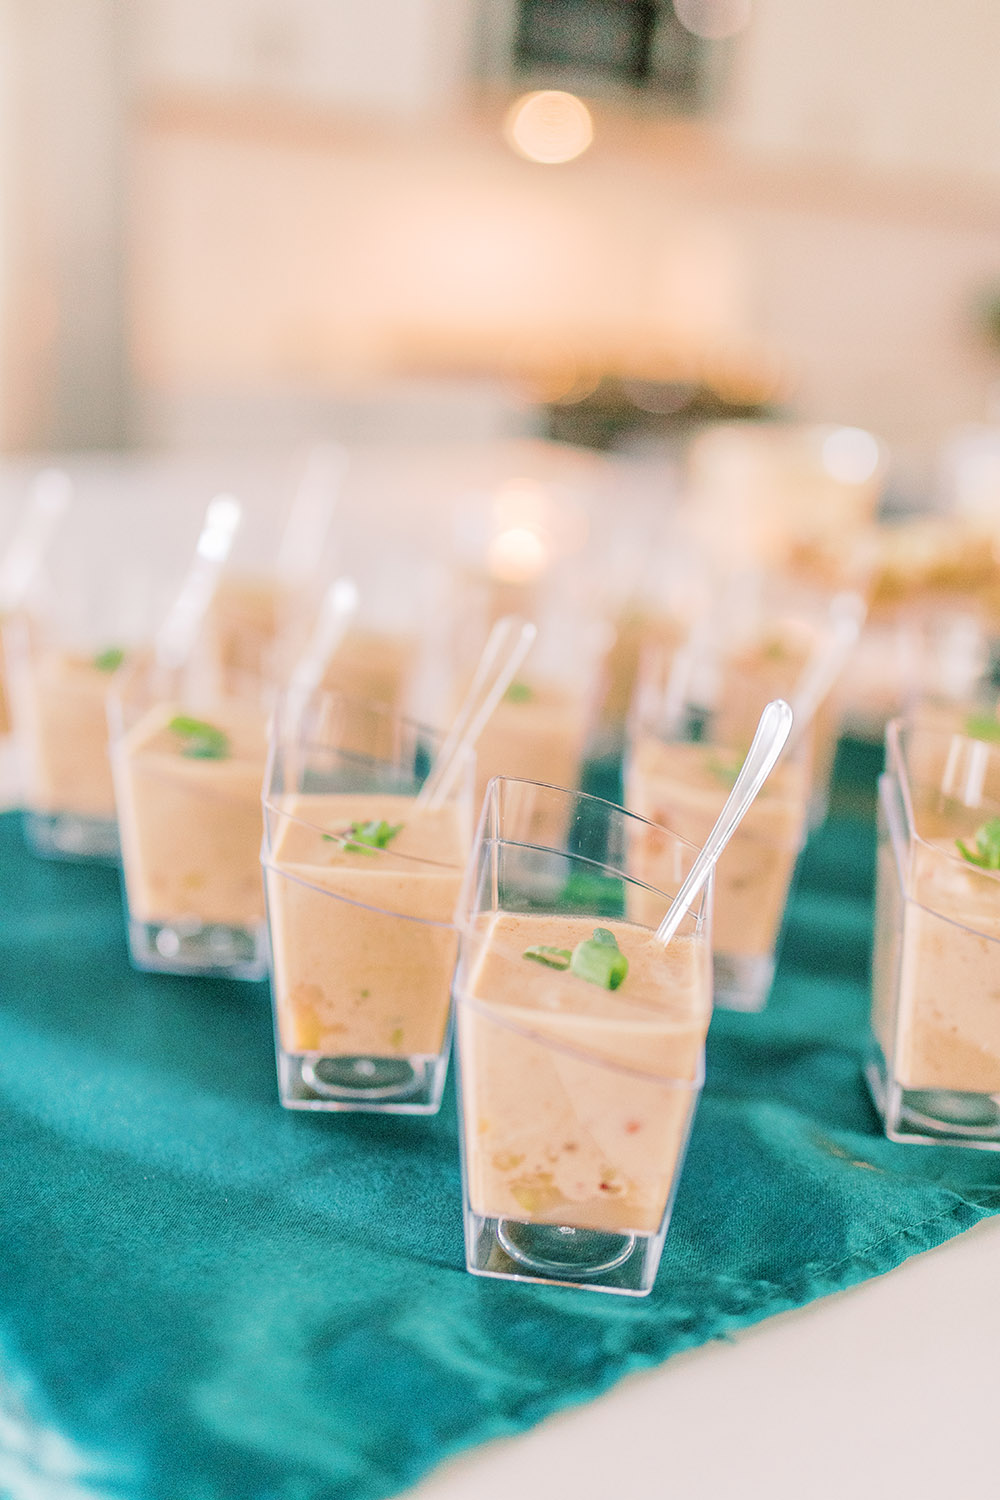 Mini soup shooters. Photo: Ashley Kristen Photography